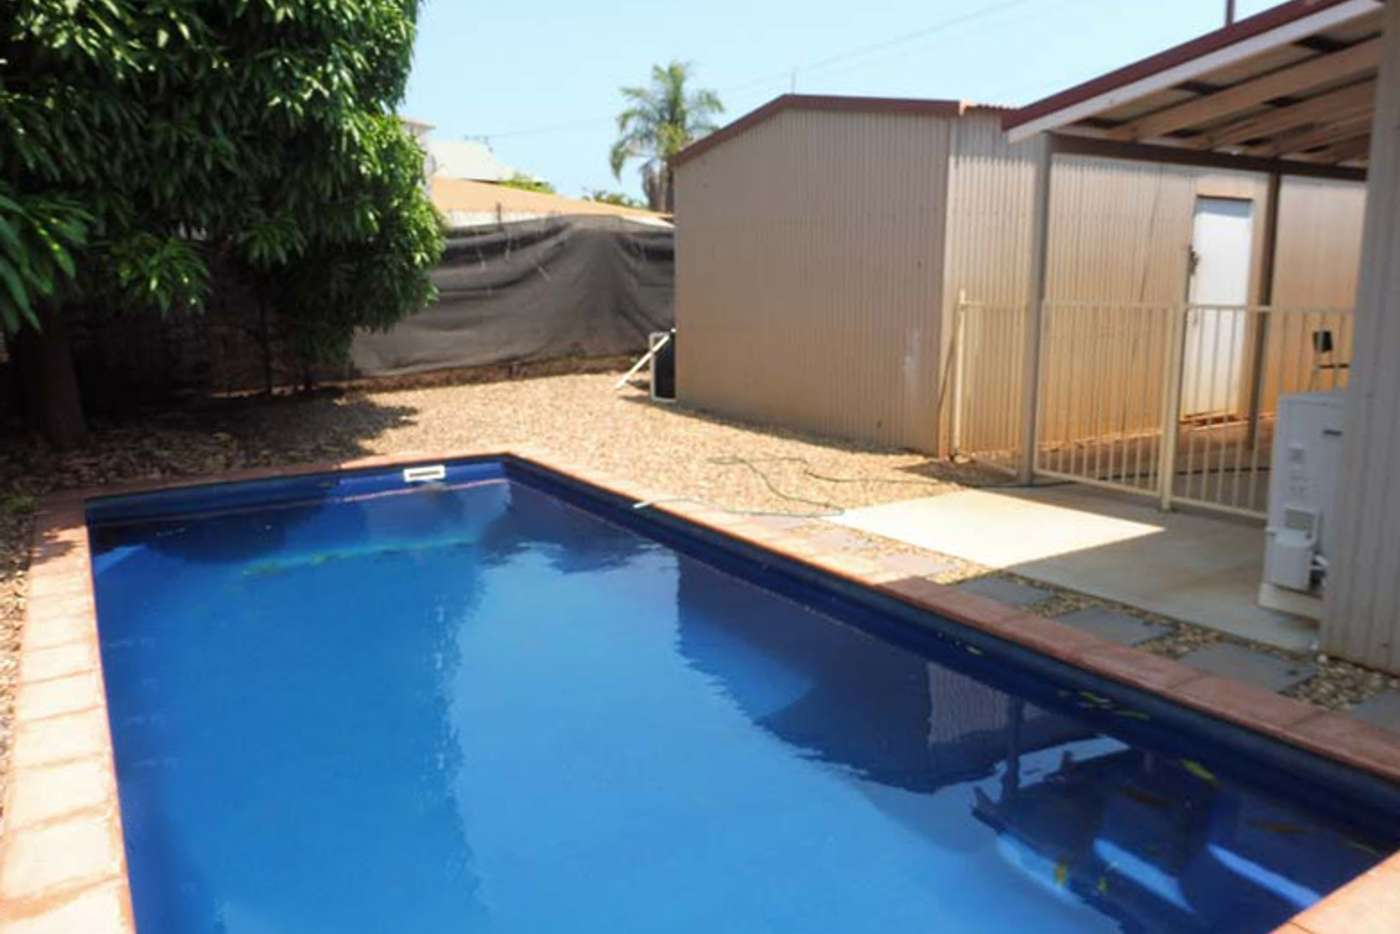 Main view of Homely house listing, 46A Blackman Street, Broome WA 6725